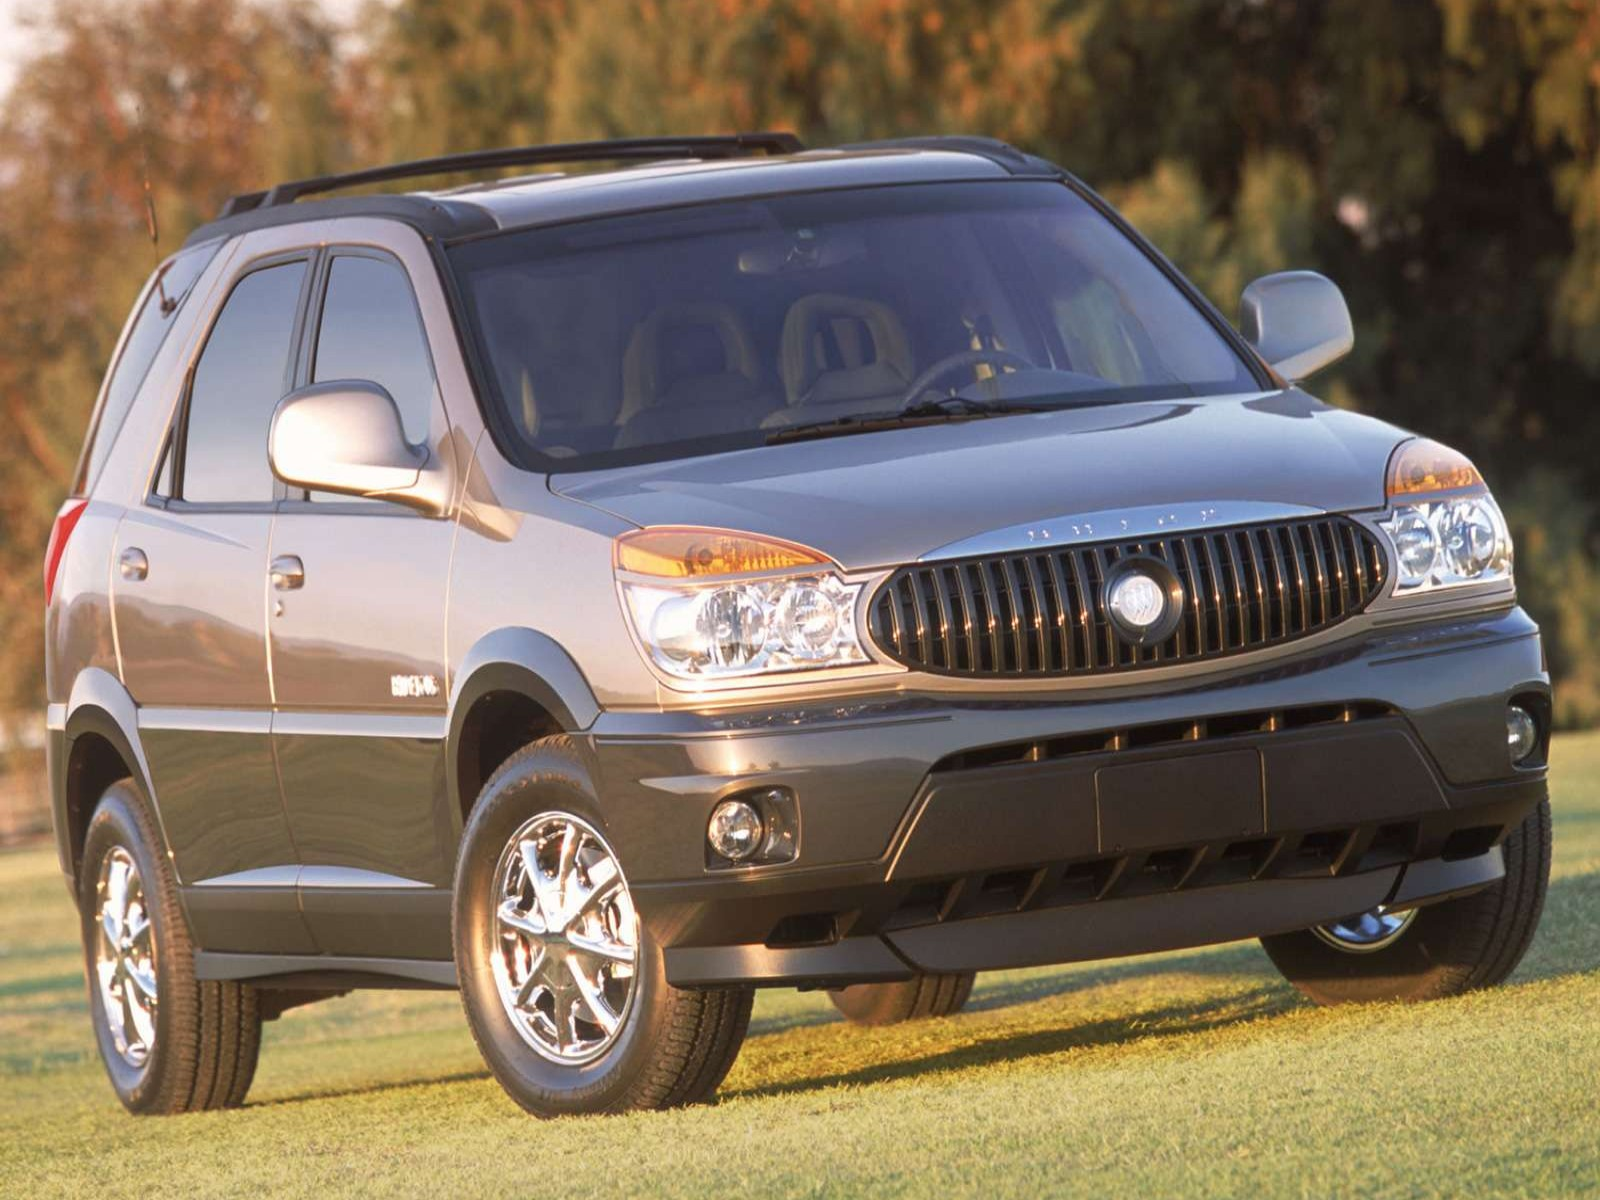 car pictures buick rendezvous 2002. Cars Review. Best American Auto & Cars Review